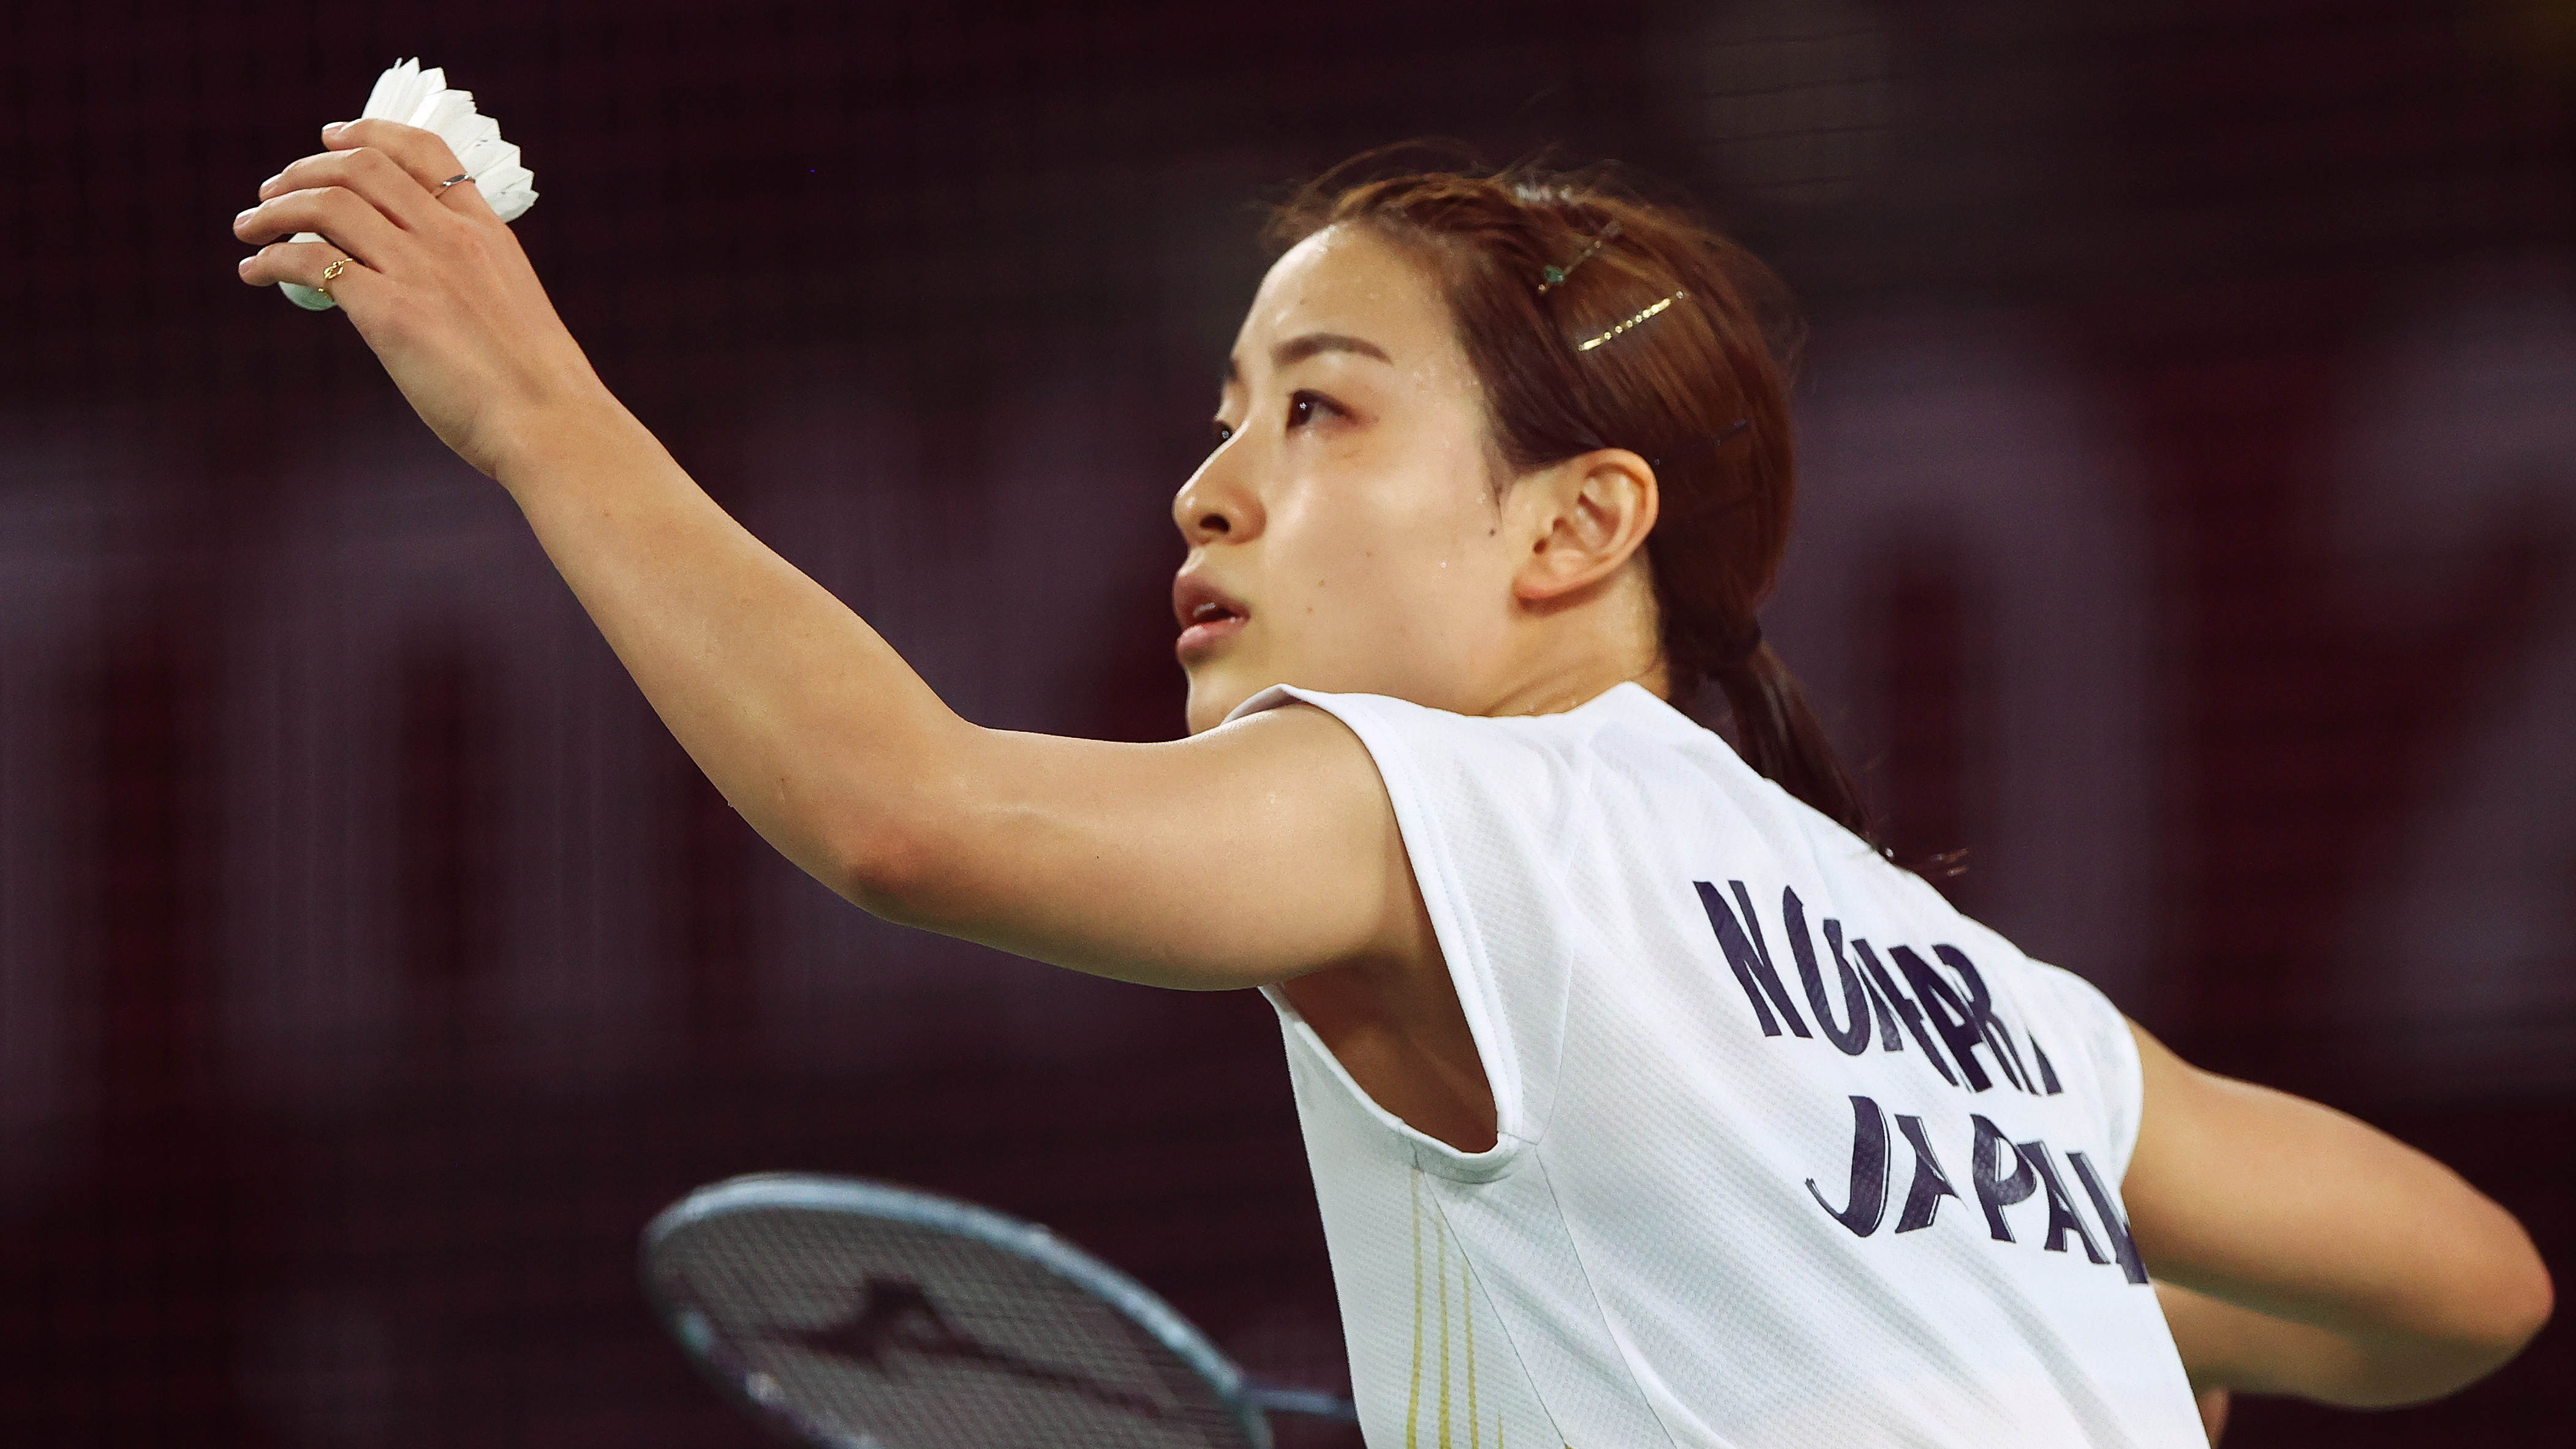 Tokyo 2020 Olympics - Badminton - Women's Singles - Last 16 - MFS - Musashino Forest Sport Plaza, Tokyo, Japan – July 29, 2021. Nozomi Okuhara of Japan prepares to serve during the match against Michelle Li of Canada. REUTERS/Leonhard Foeger